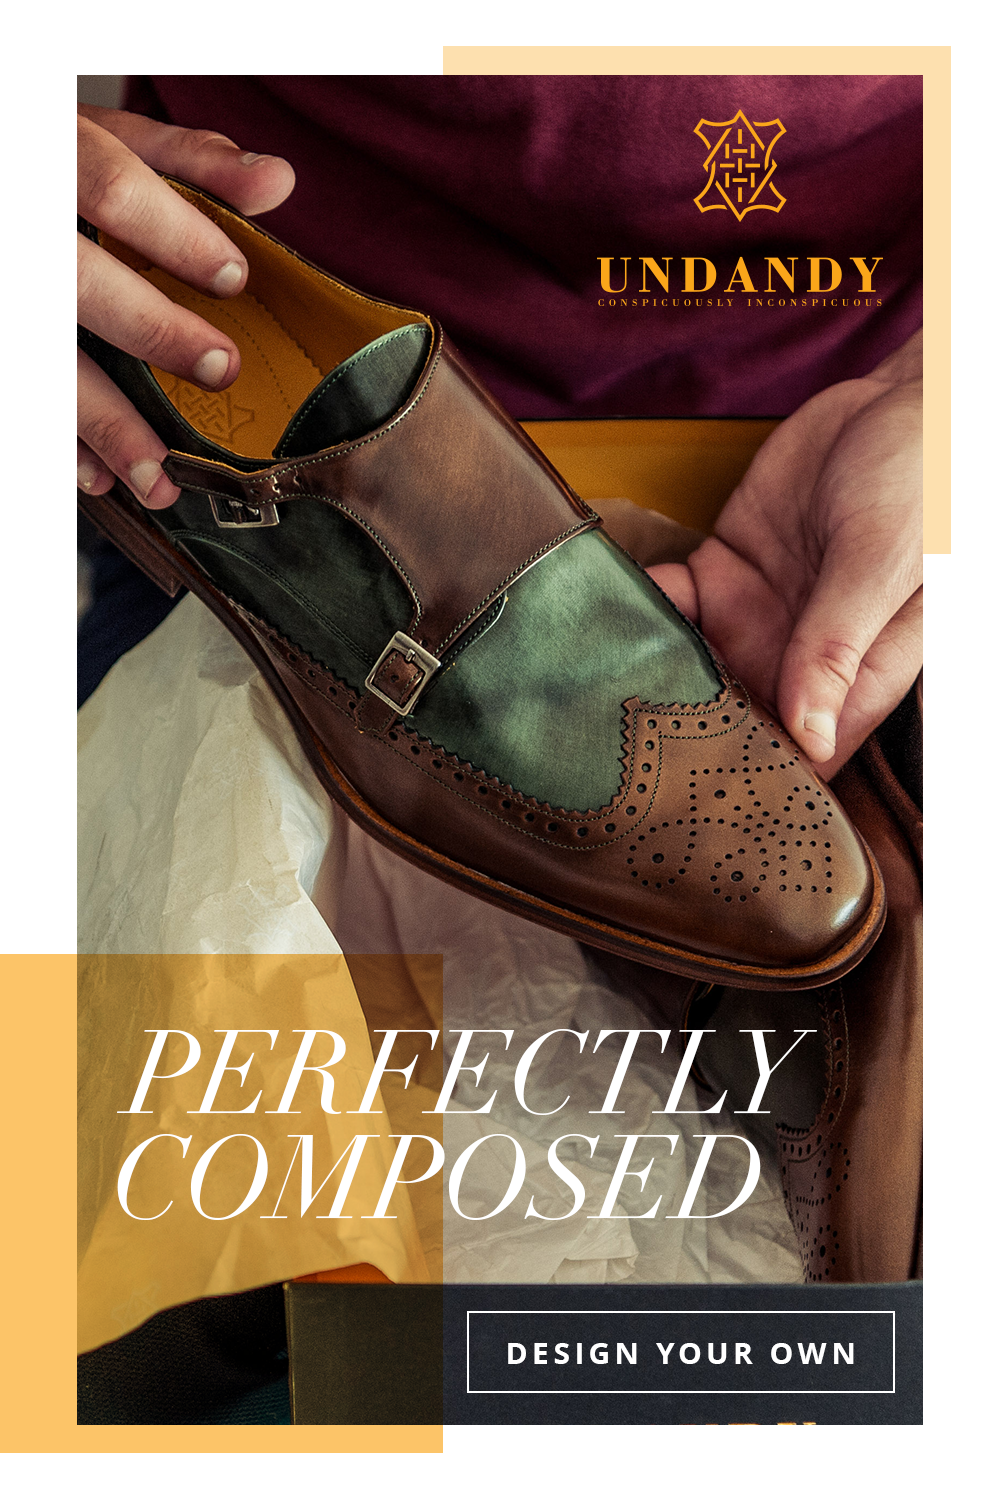 30c763c301a Undandy Custom Made Handcrafted Dress Shoes for Men. Design your s today!